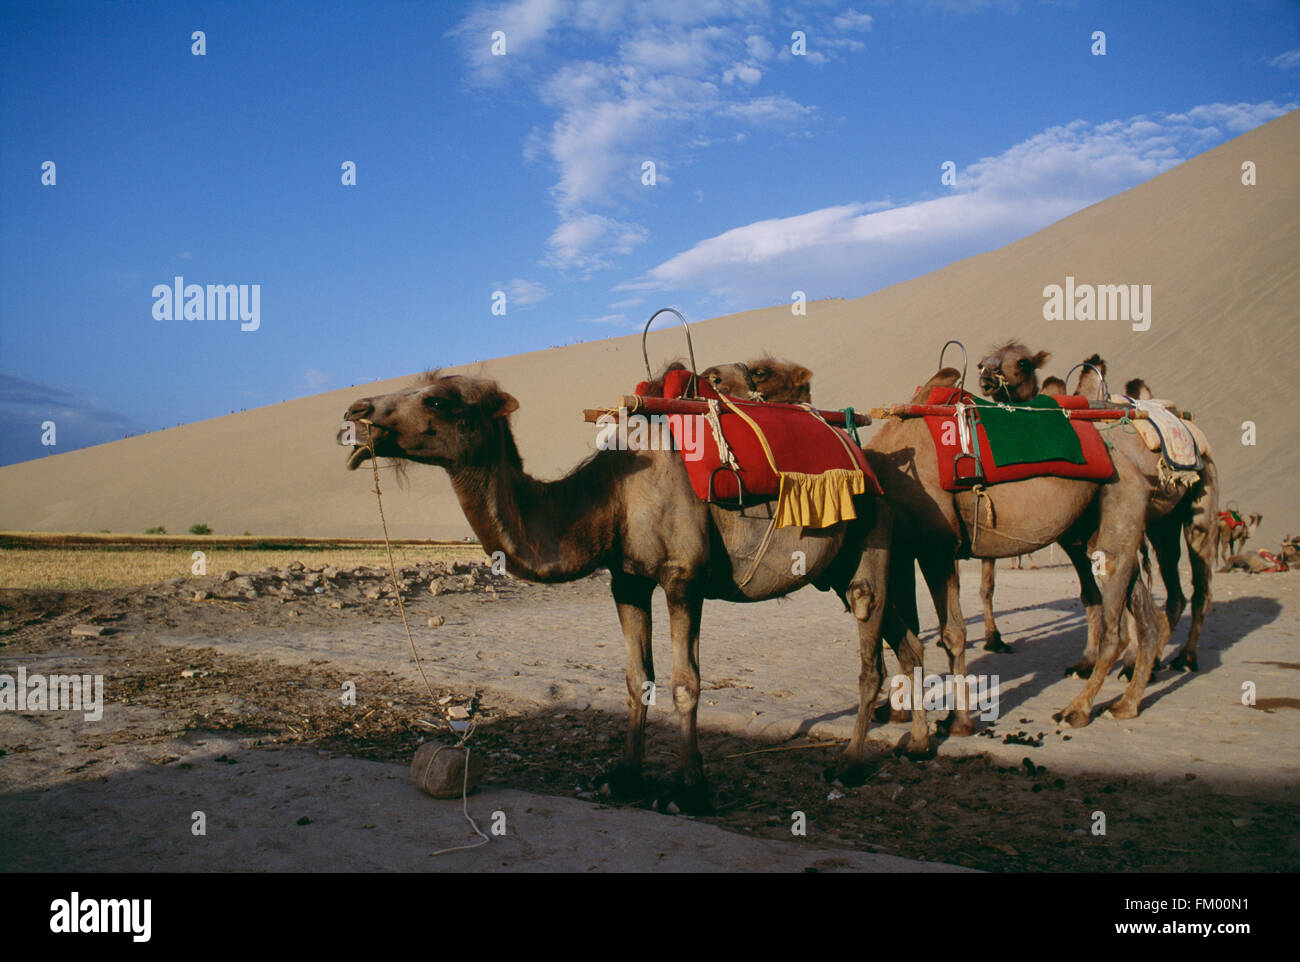 Camels Waiting for Tourists In a Desert, Dunhuang, Gansu, China - Stock Image